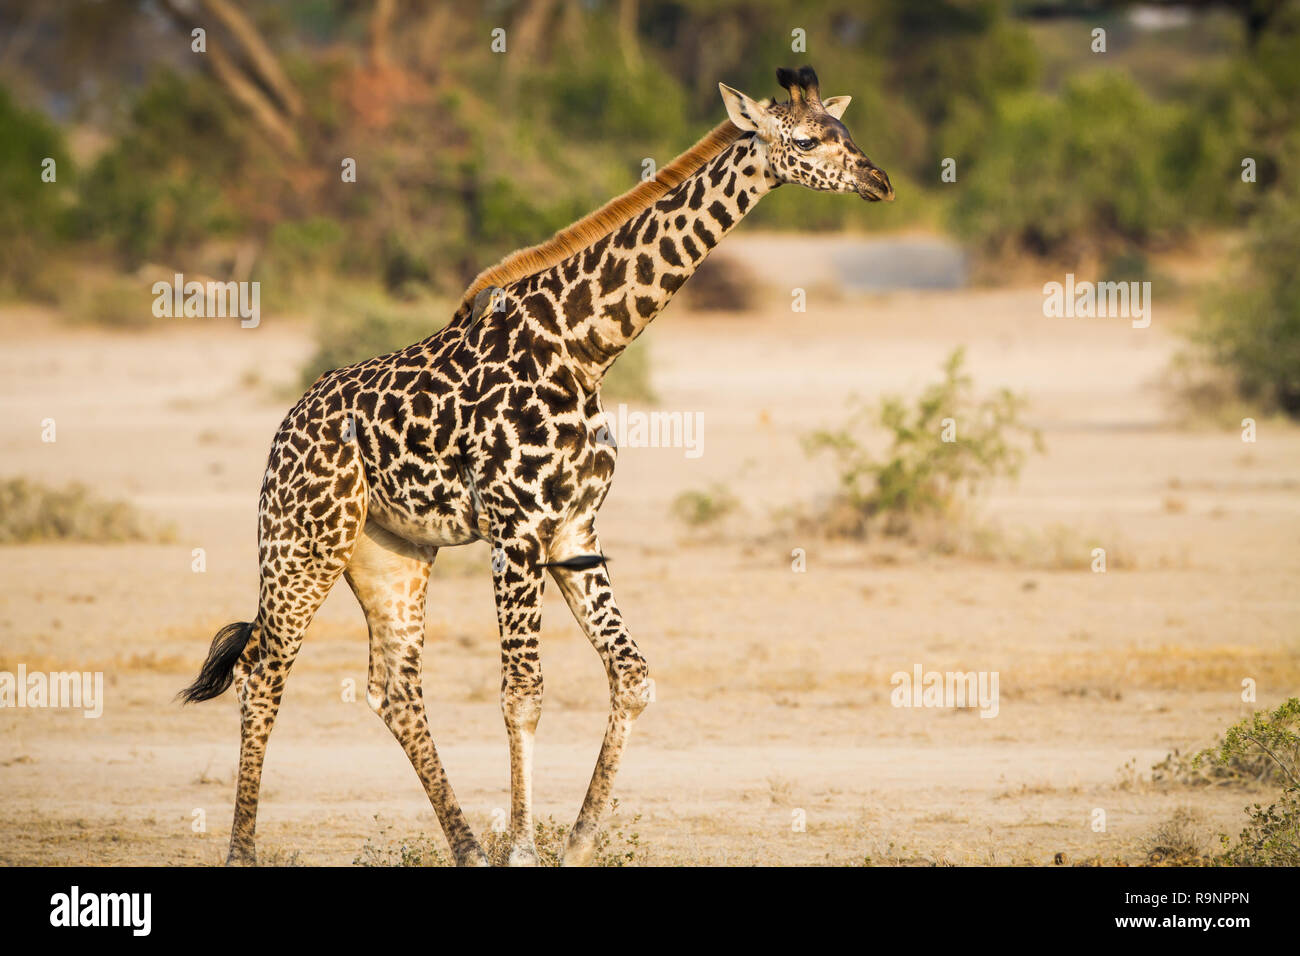 Young, baby giraffe in the wilds of Tanzania - Stock Image